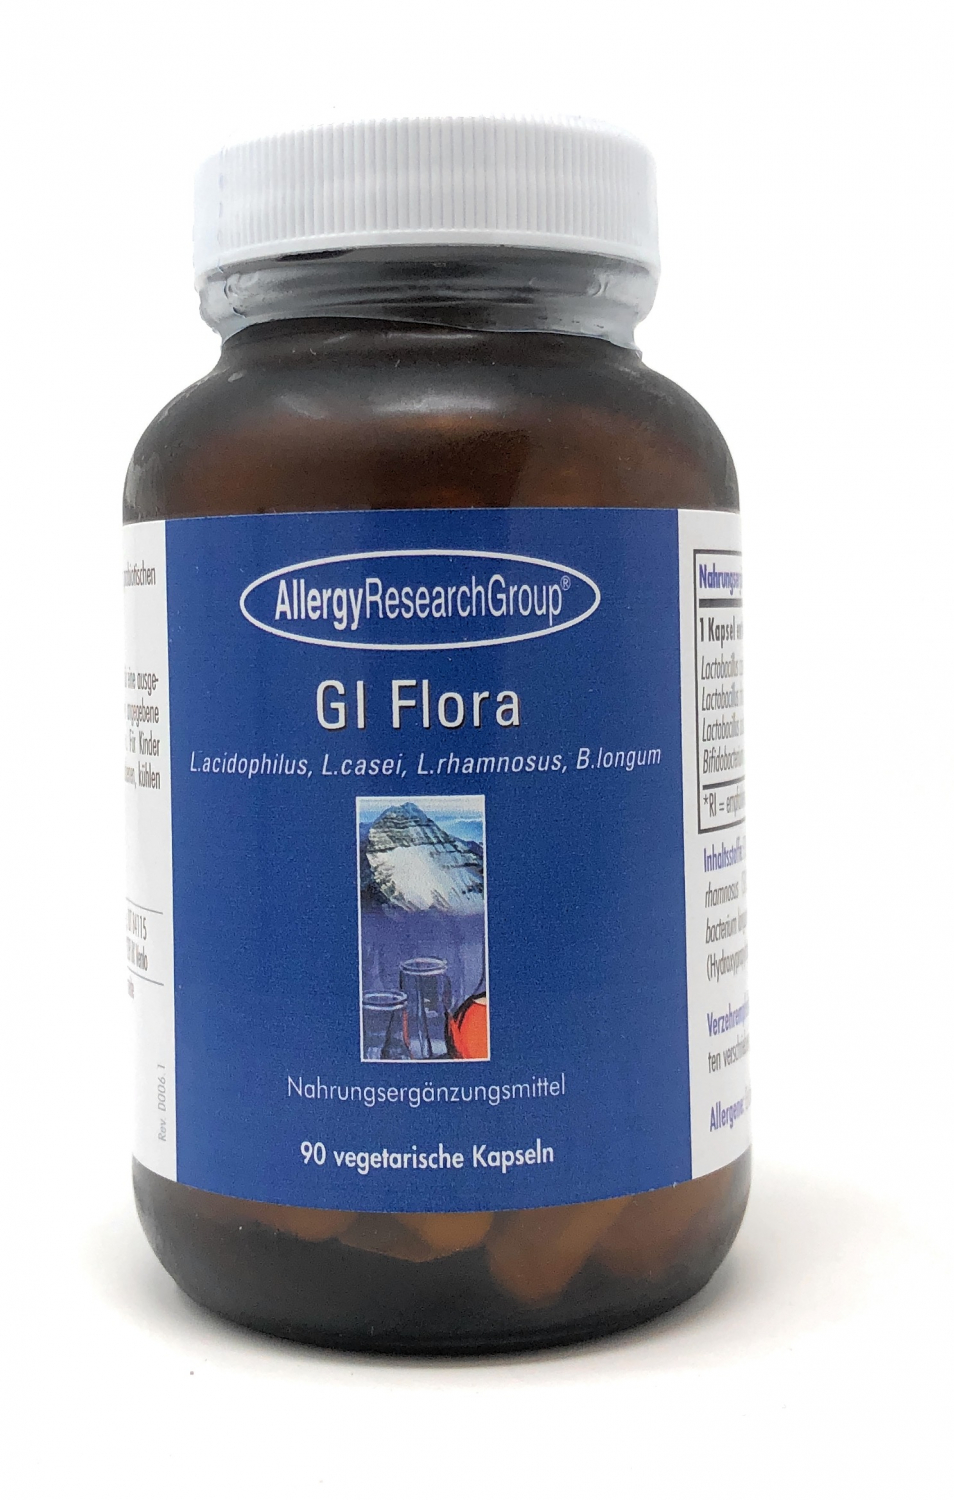 Allergy Research Group GI Flora 90 veg. Kapseln